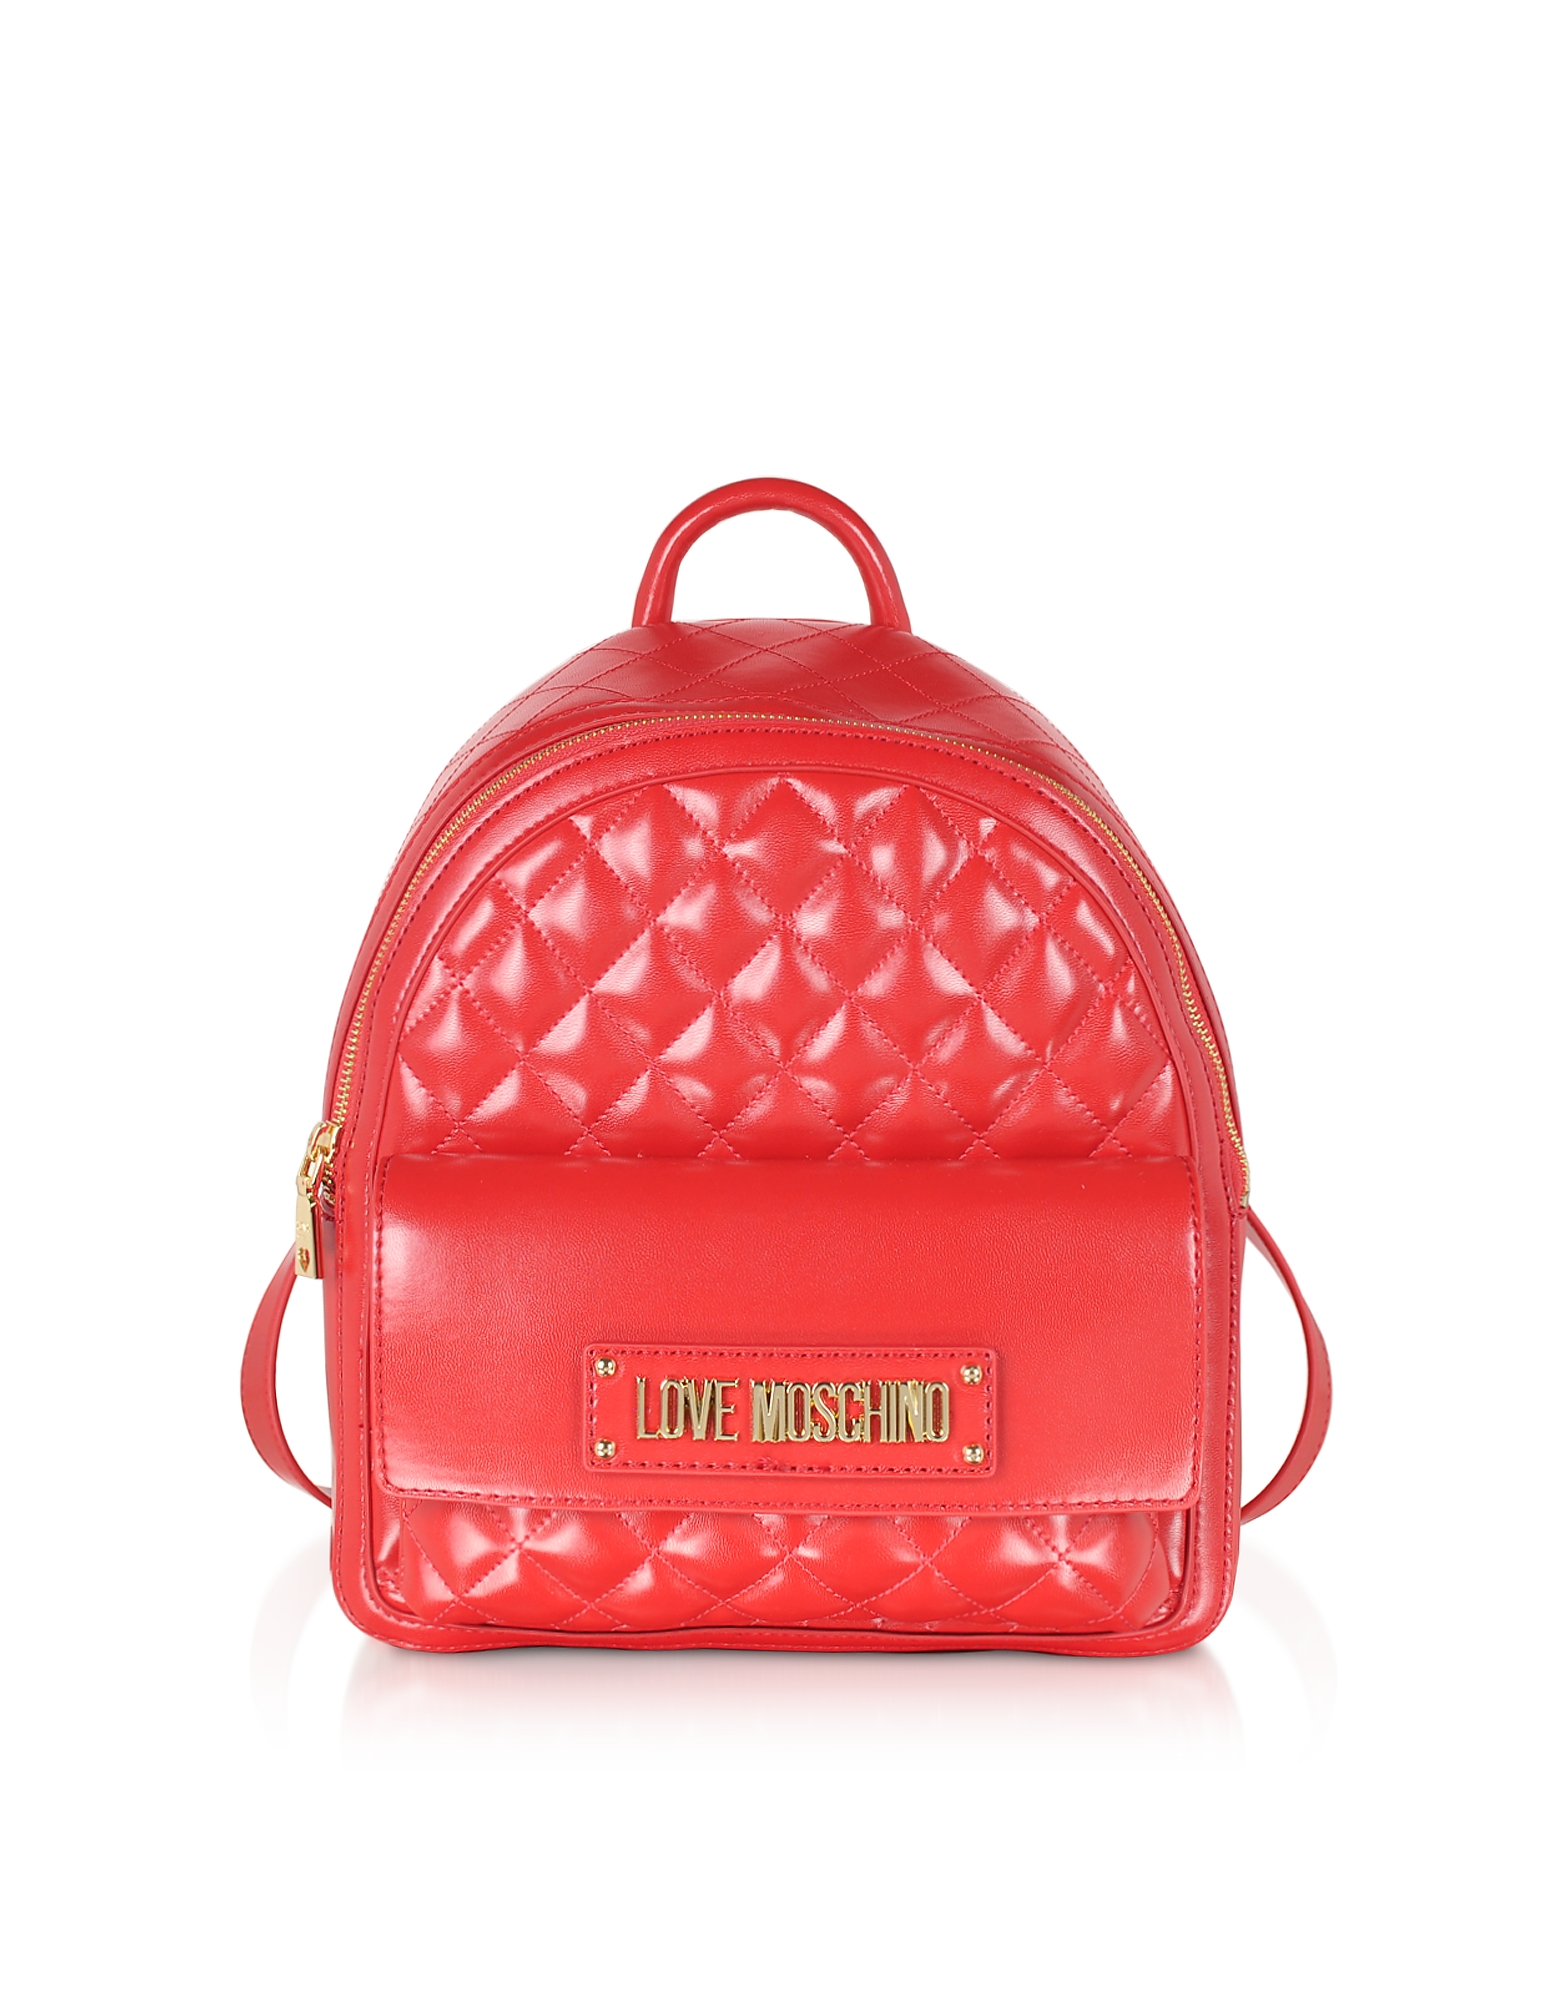 Love Moschino Designer Handbags, Quilted Eco-leather Backpack